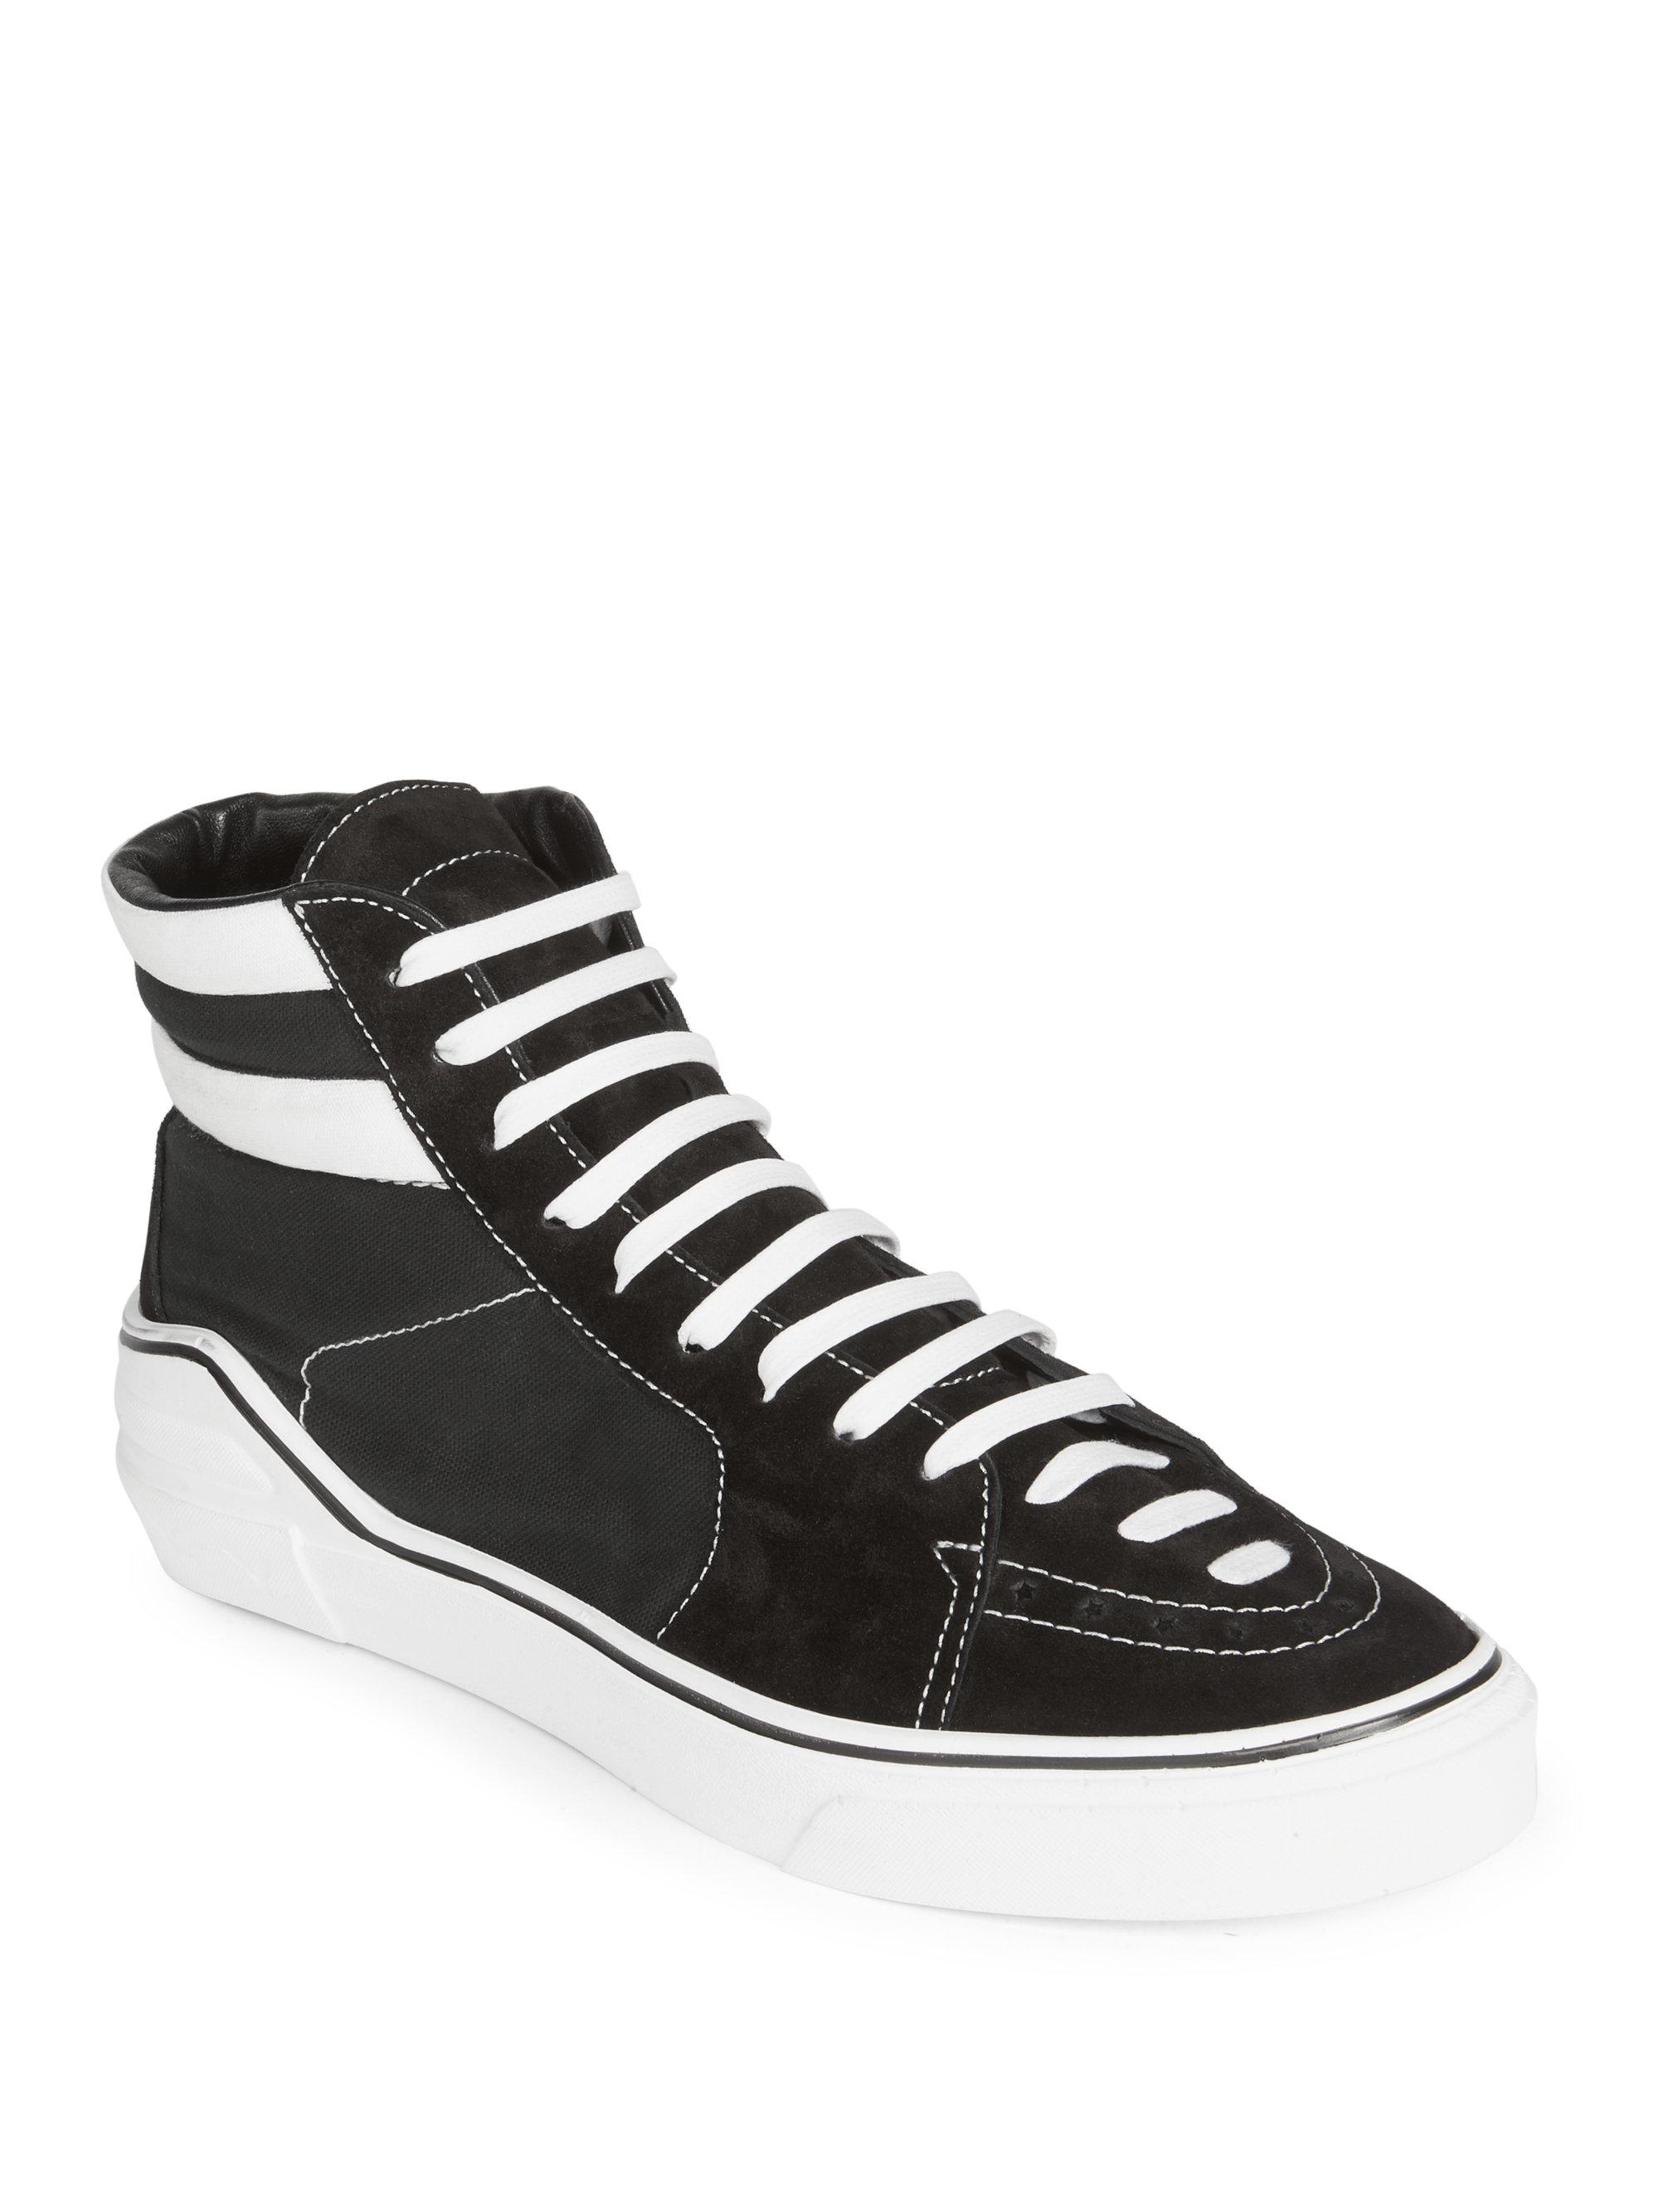 GivenchyMid-Top Suede Sneakers ZPFcniD